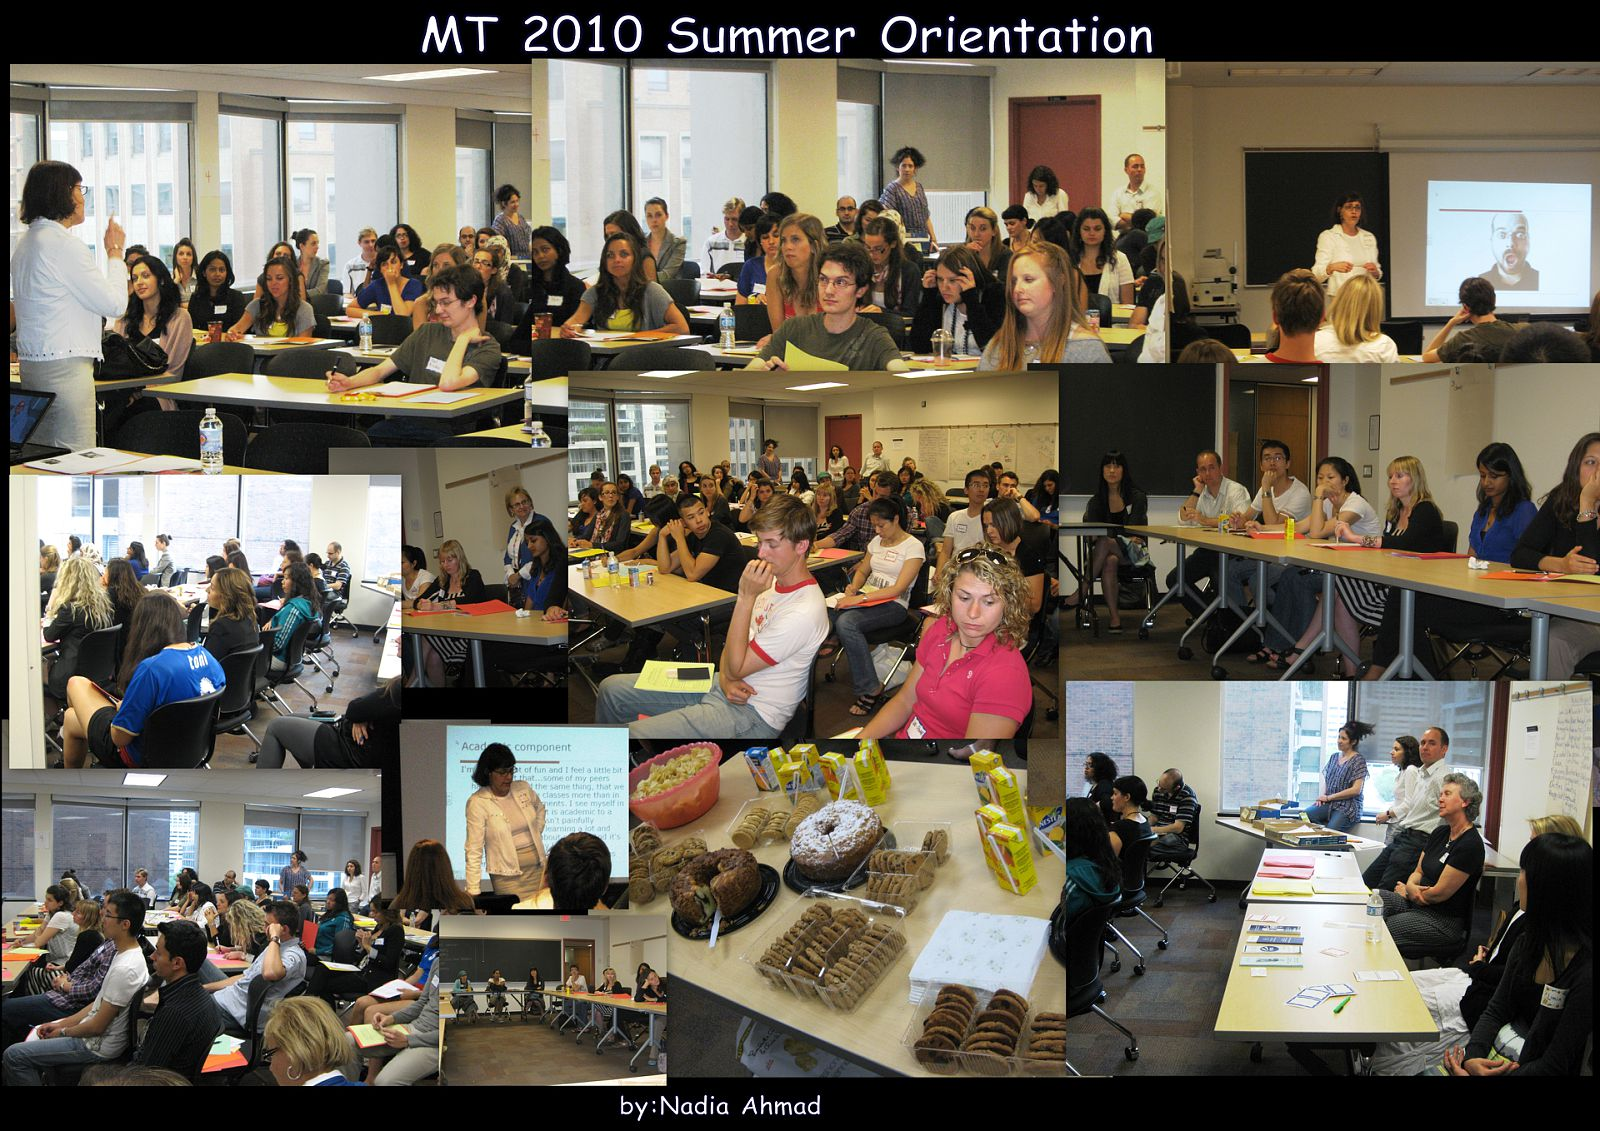 MT Summer Orientation